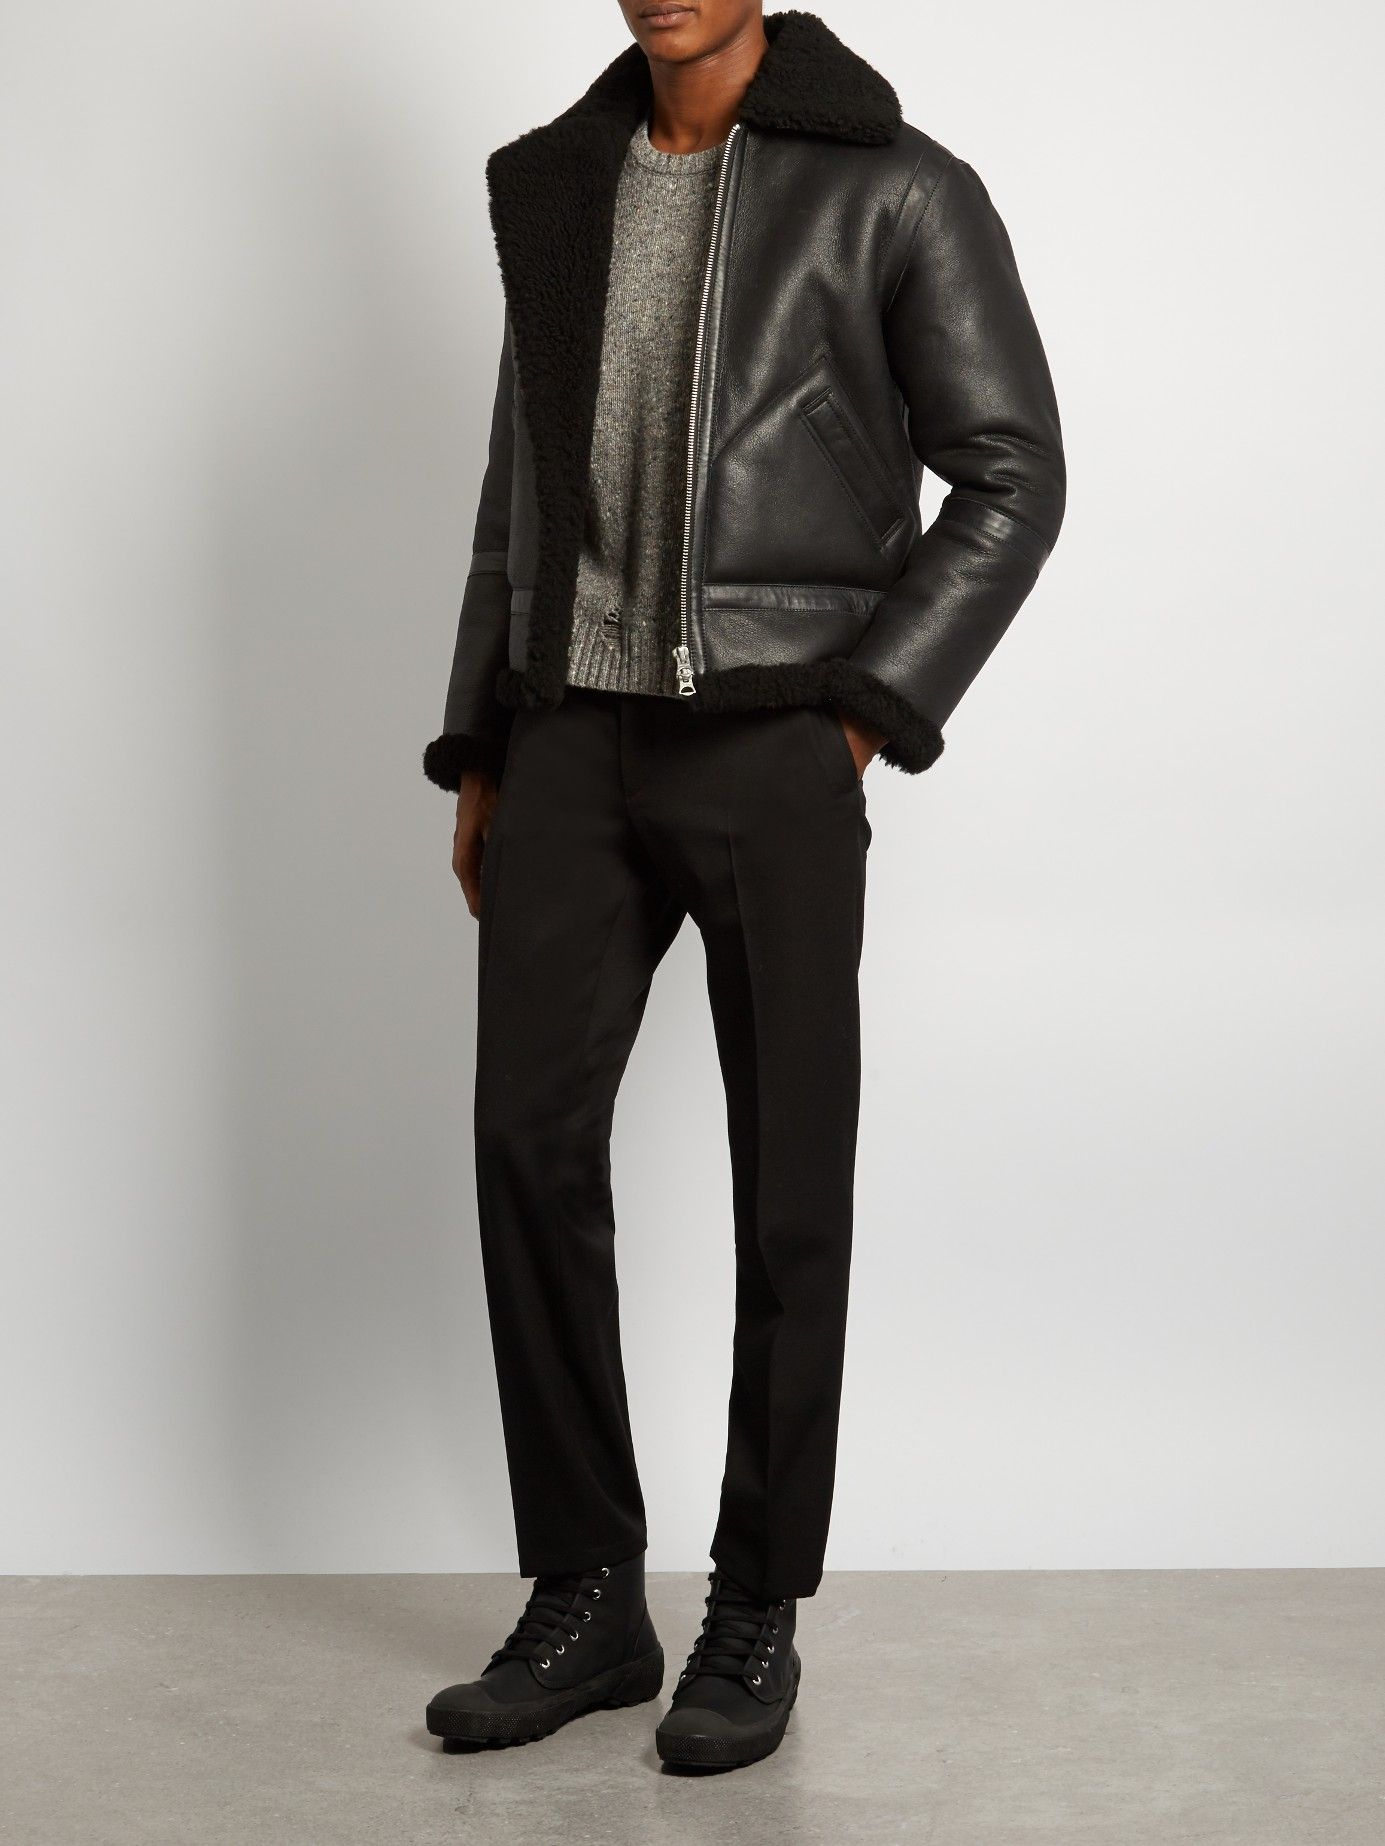 bd5772ae9f3 ACNE STUDIOS Ian shearling jacket €2,200 | MODE POUR HOMMES ...